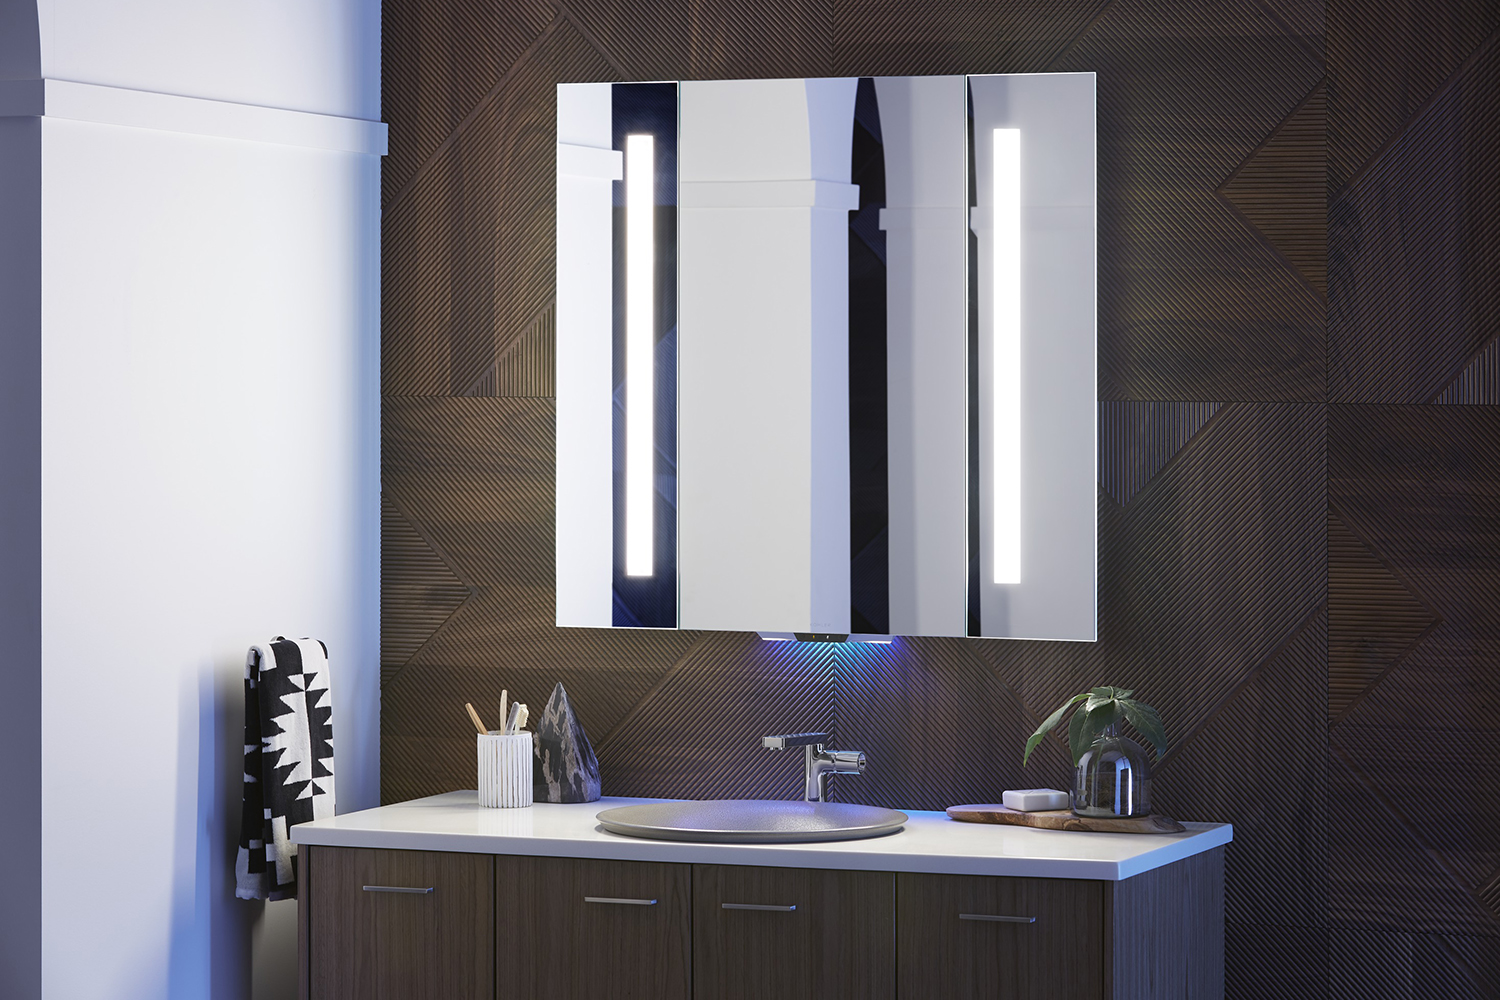 Verdera An Alexa Enabled Mirror From Kohler Makes Your